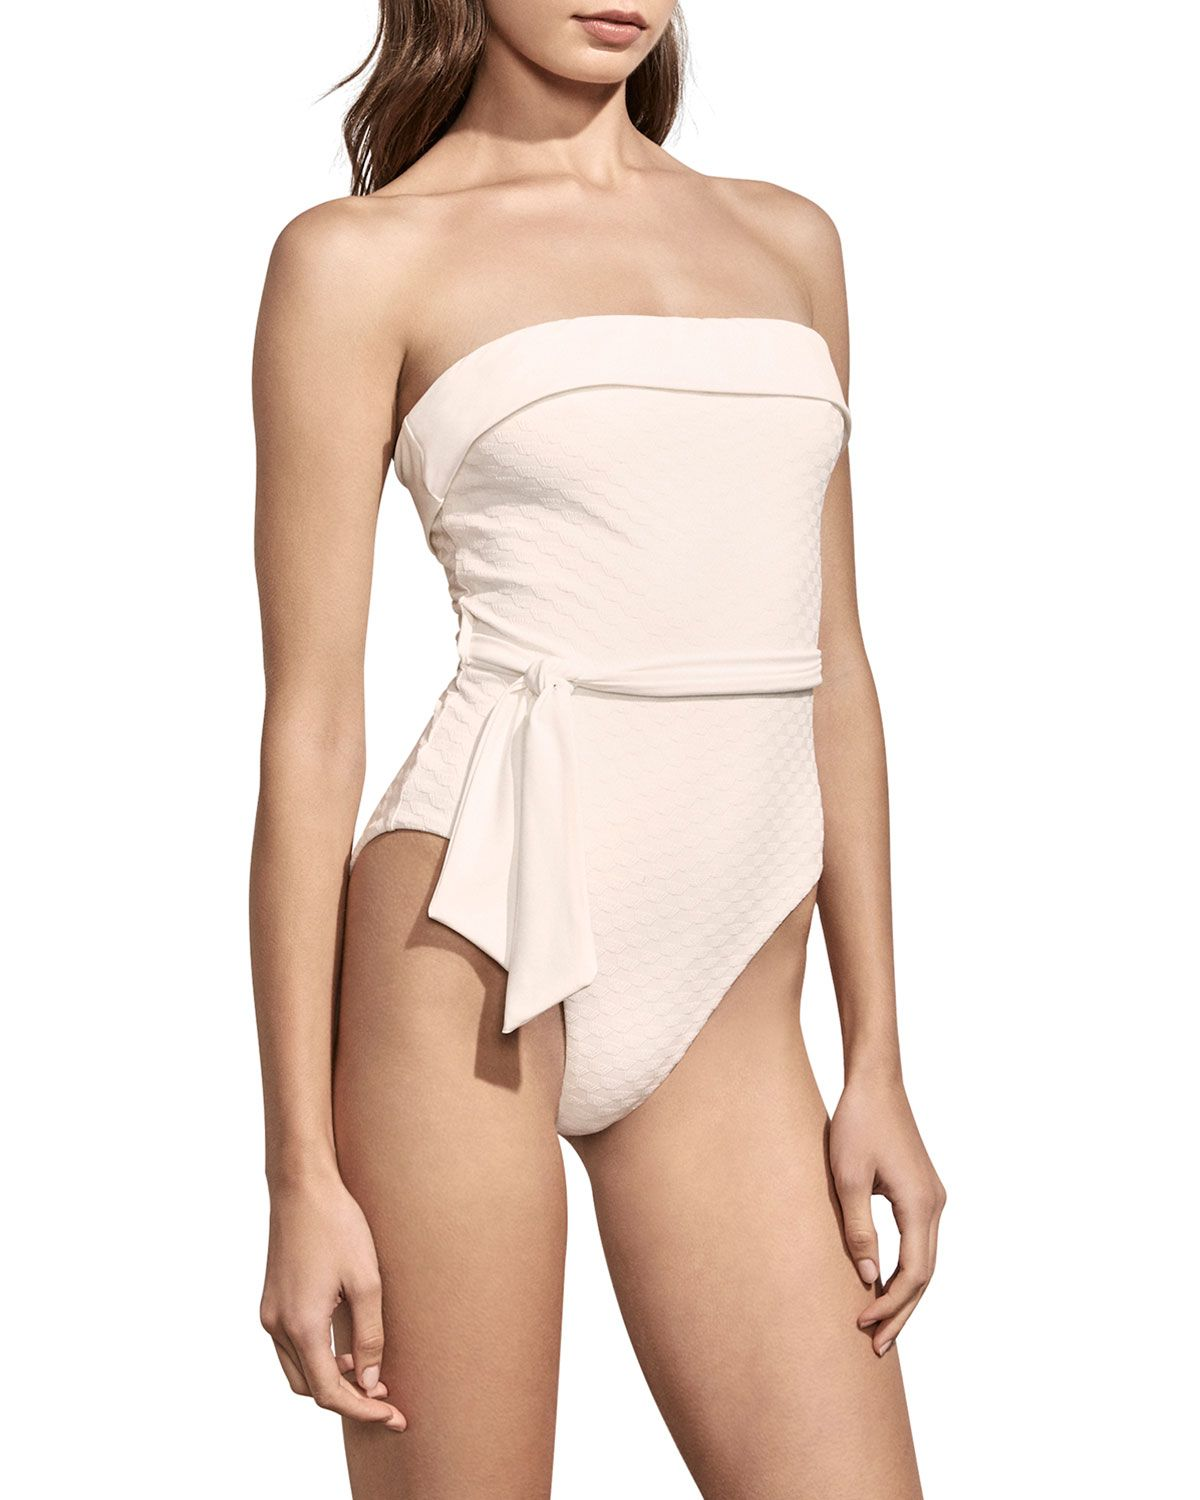 b543f229543 11 Best Swimsuit Brands - Designer Bathing Suits Lines to Try 2019